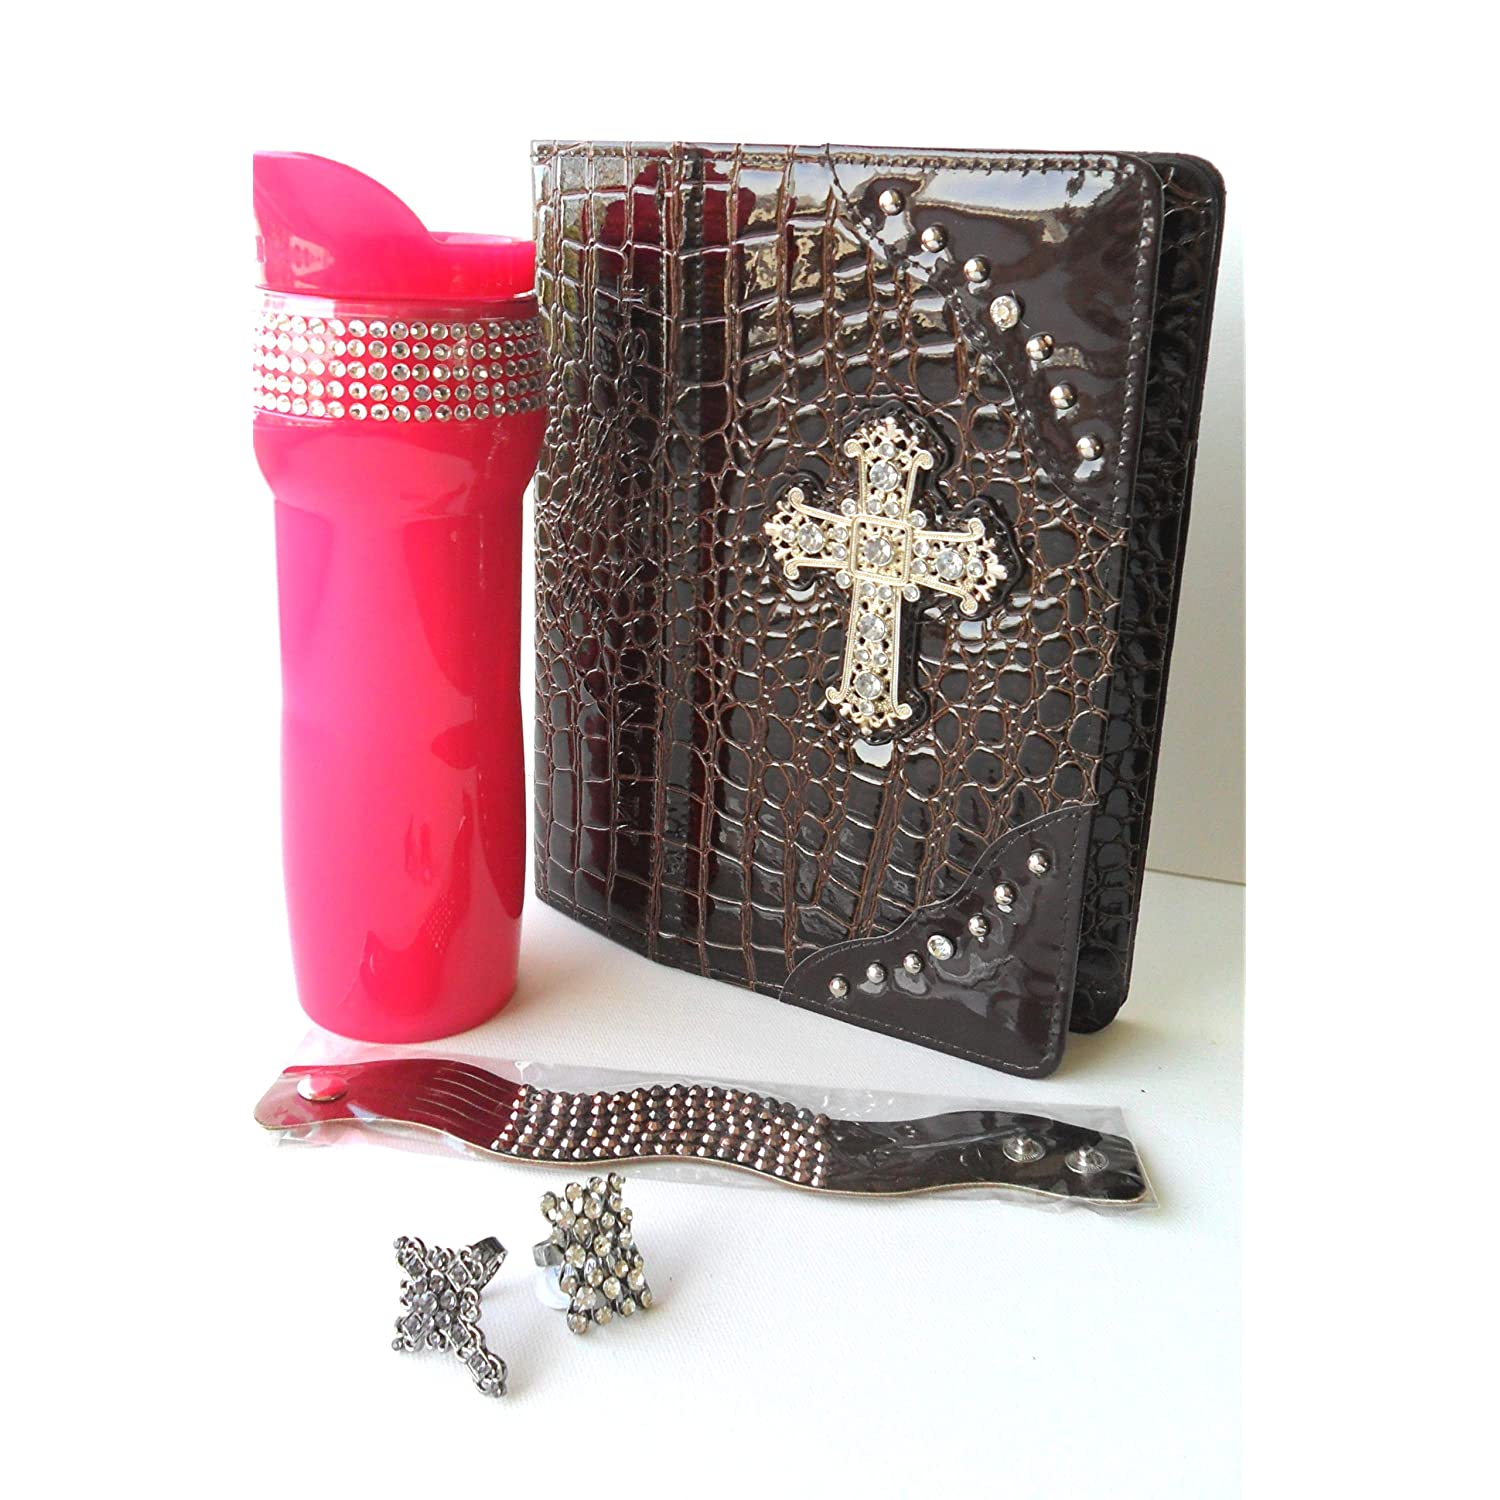 Rhinestone Bling Gift Set w iPad 2 Case &#038; Hot Pink Travel Coffee Mug